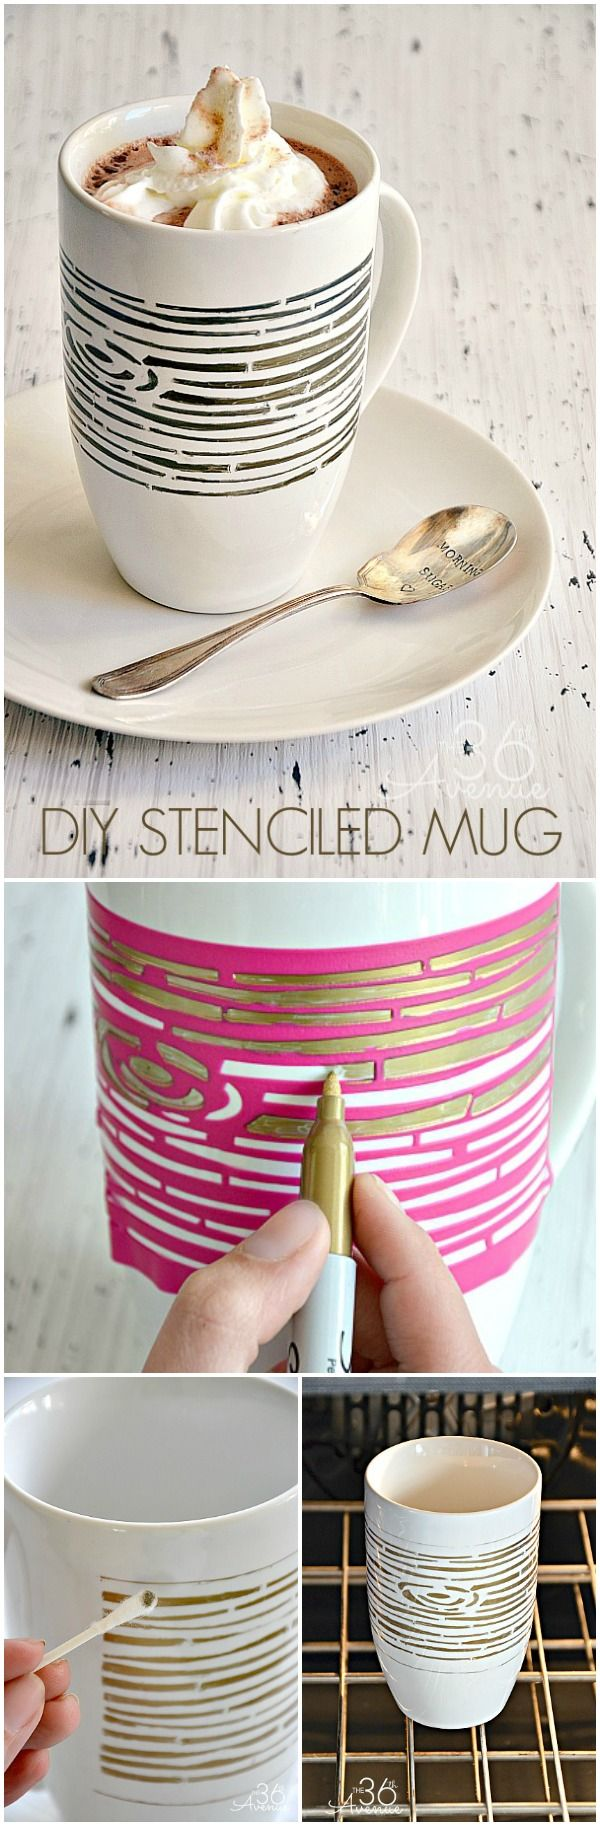 DIY Wood Grain Mug Tutorial... So easy to make! #craft #diy #gifts